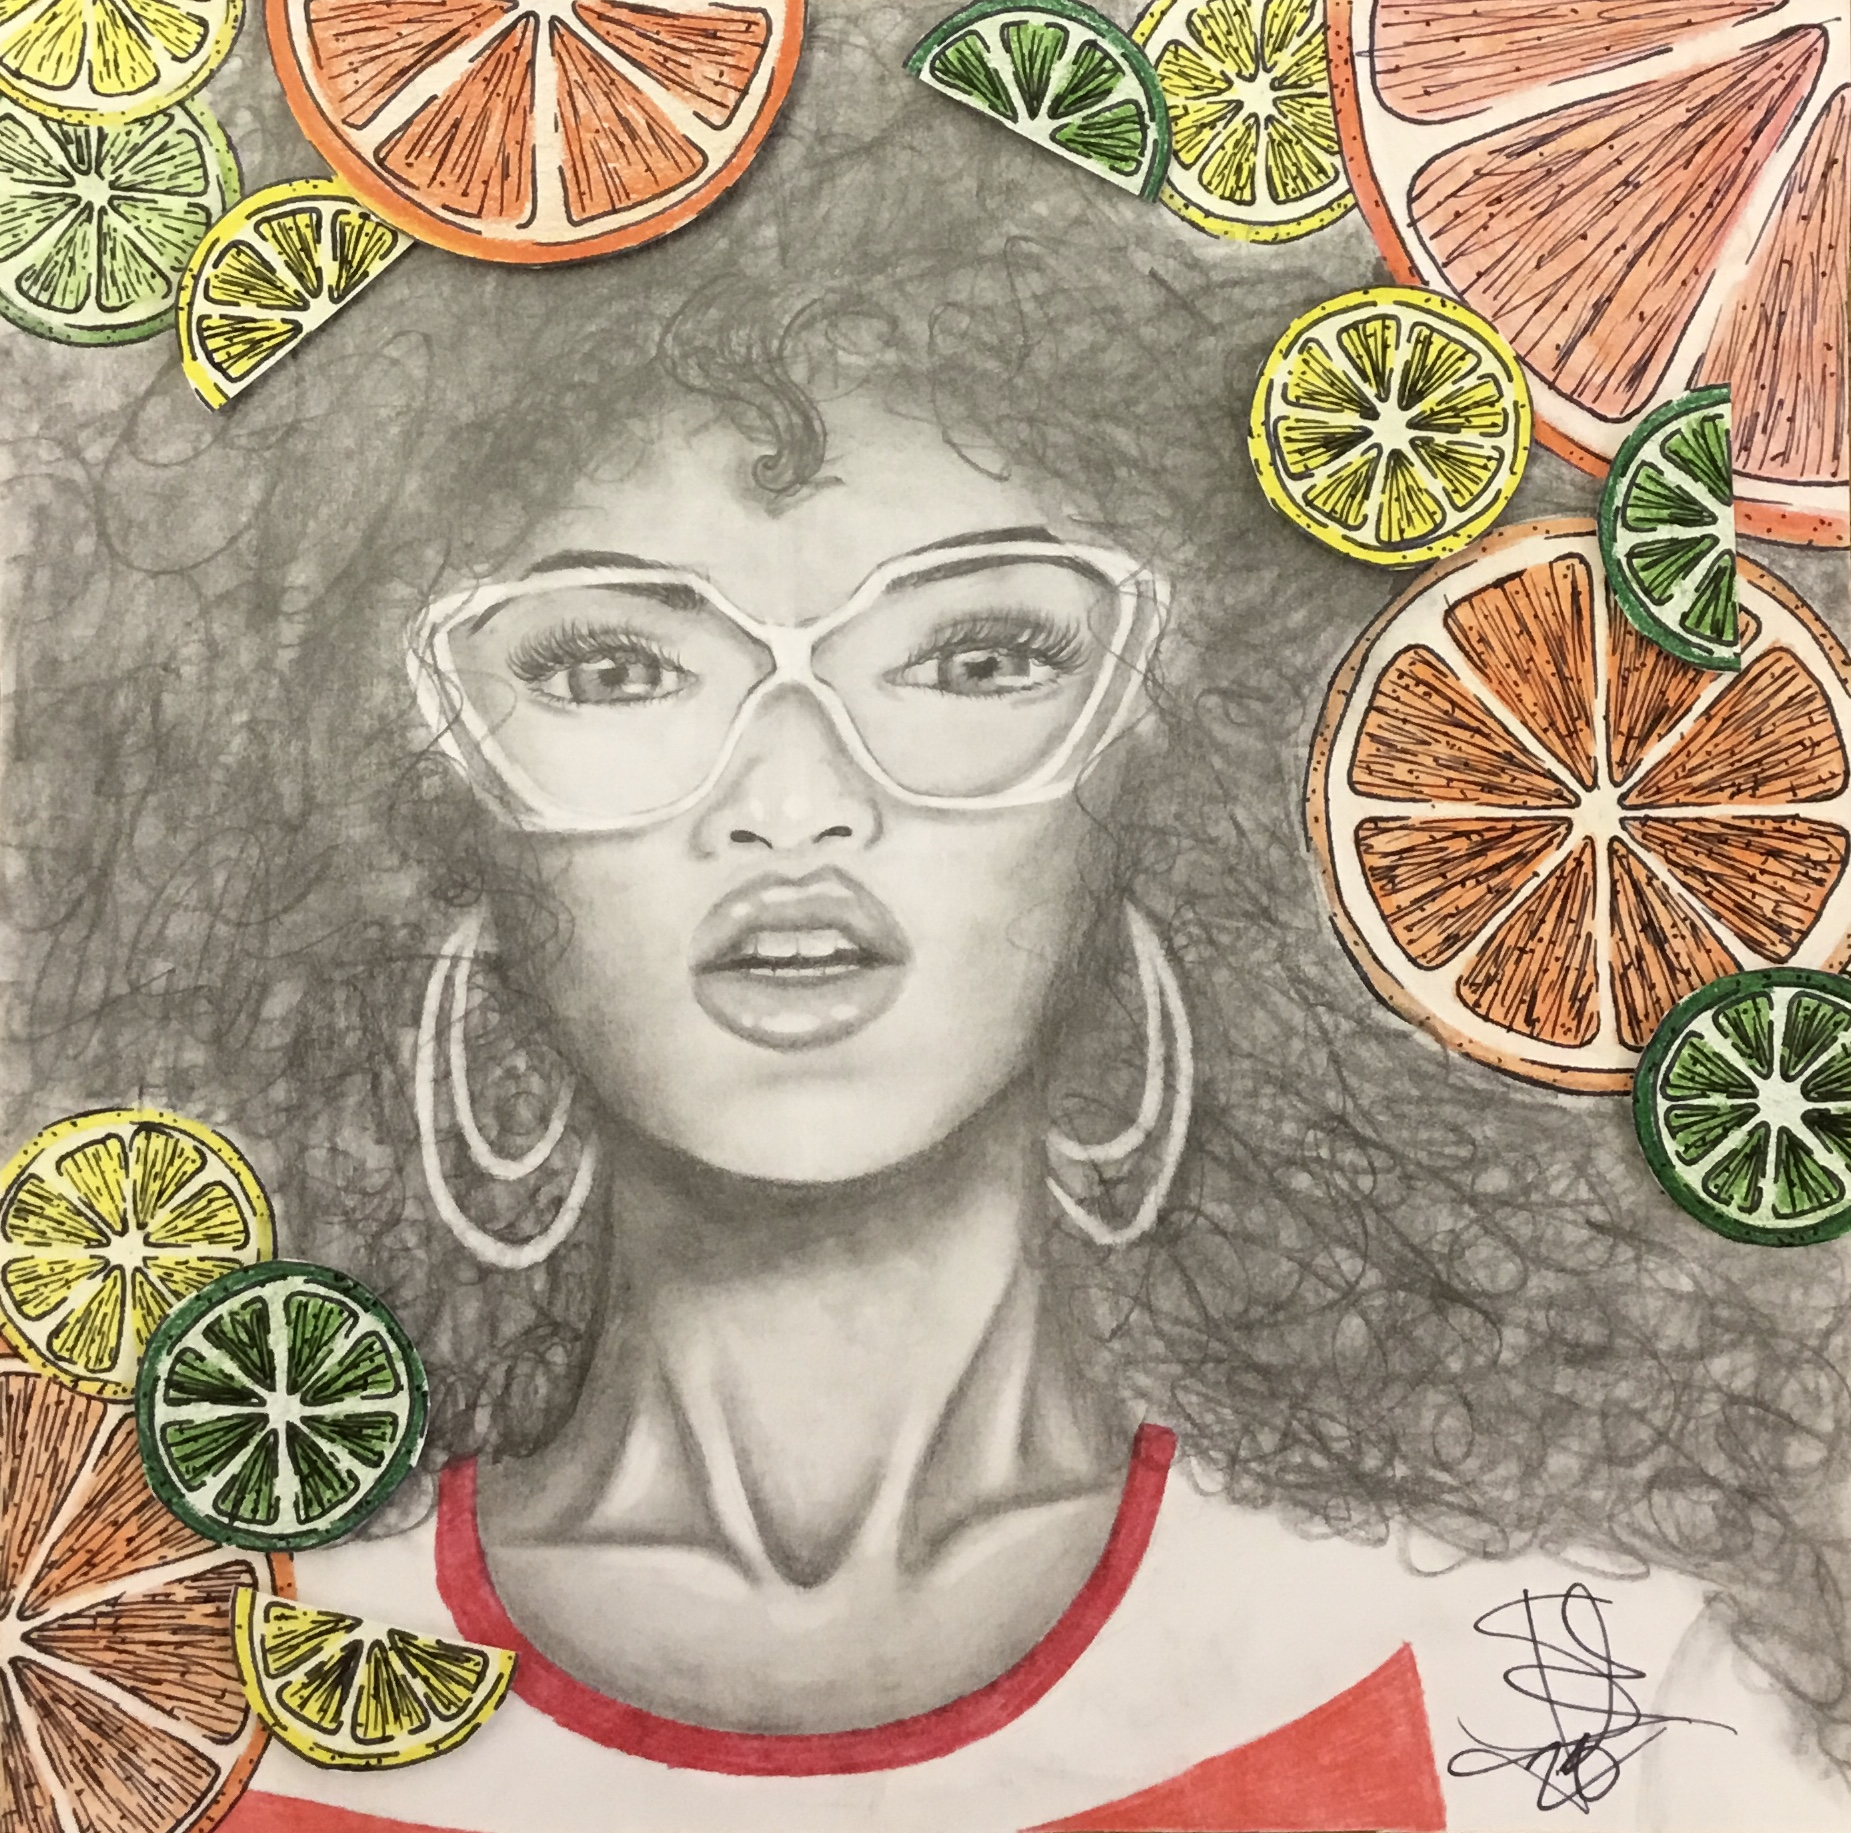 charcoal drawing of face surrounded by orange slices